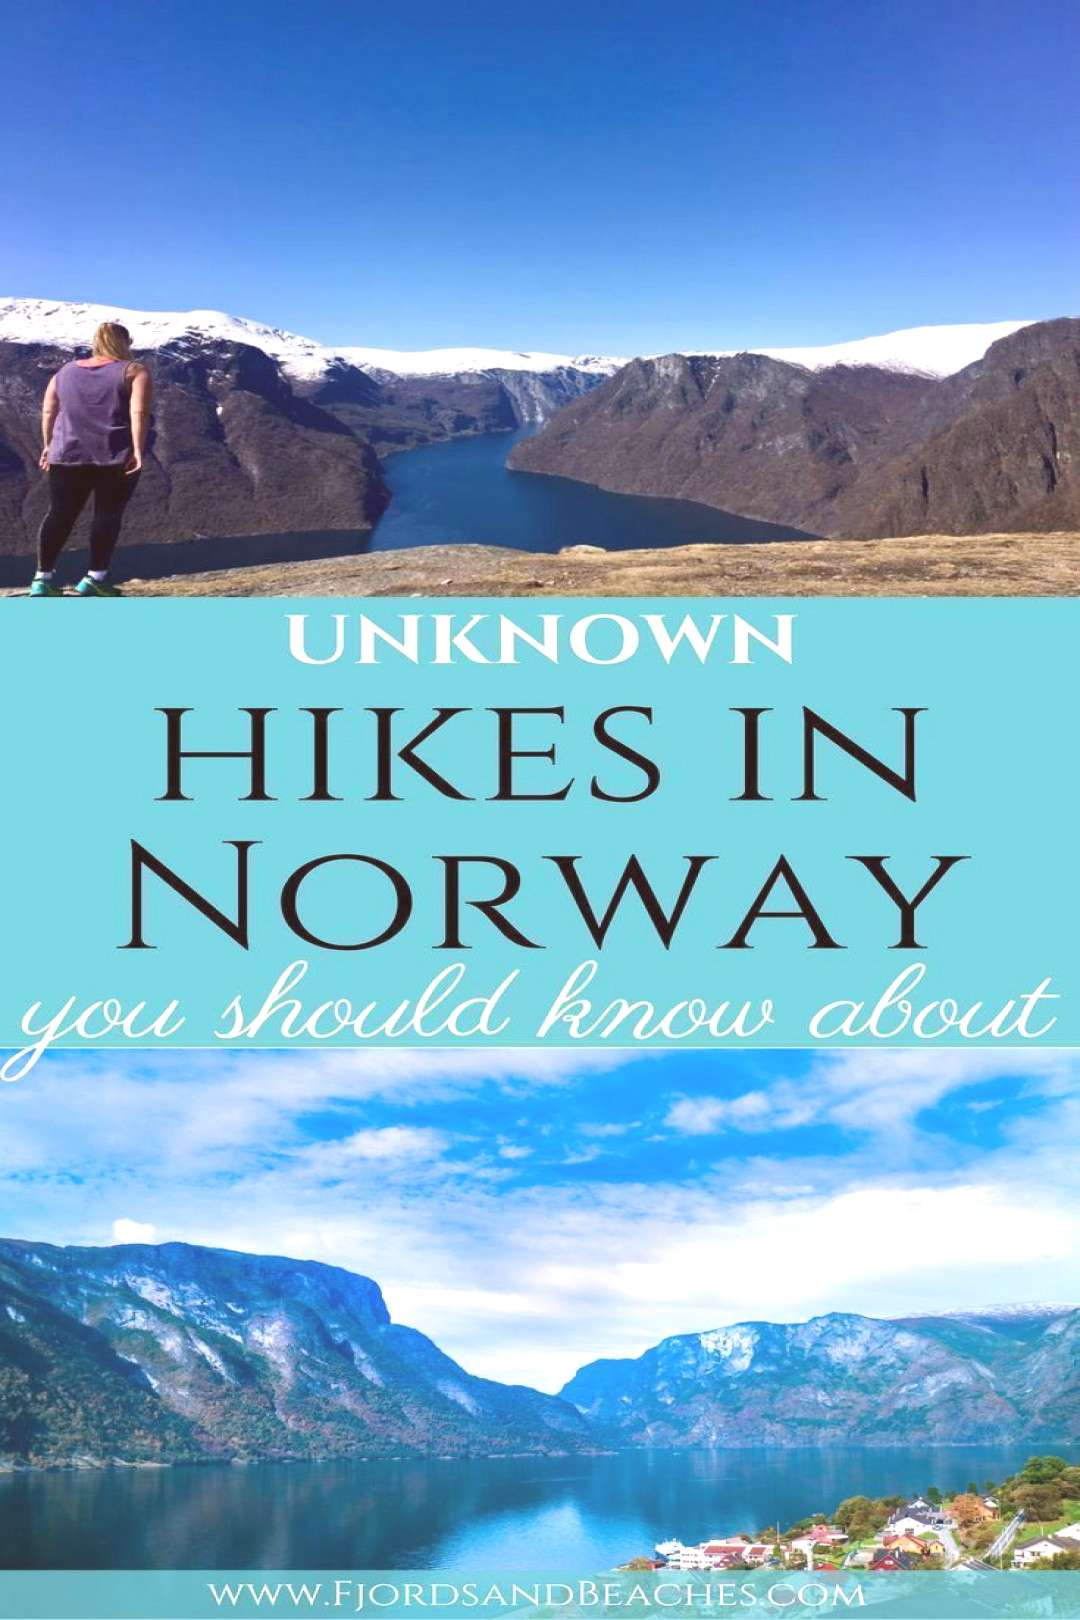 The Best Hikes in Norway The Priest Hike and the Hovdungo Hike - The Best Hikes in Norway The Pr